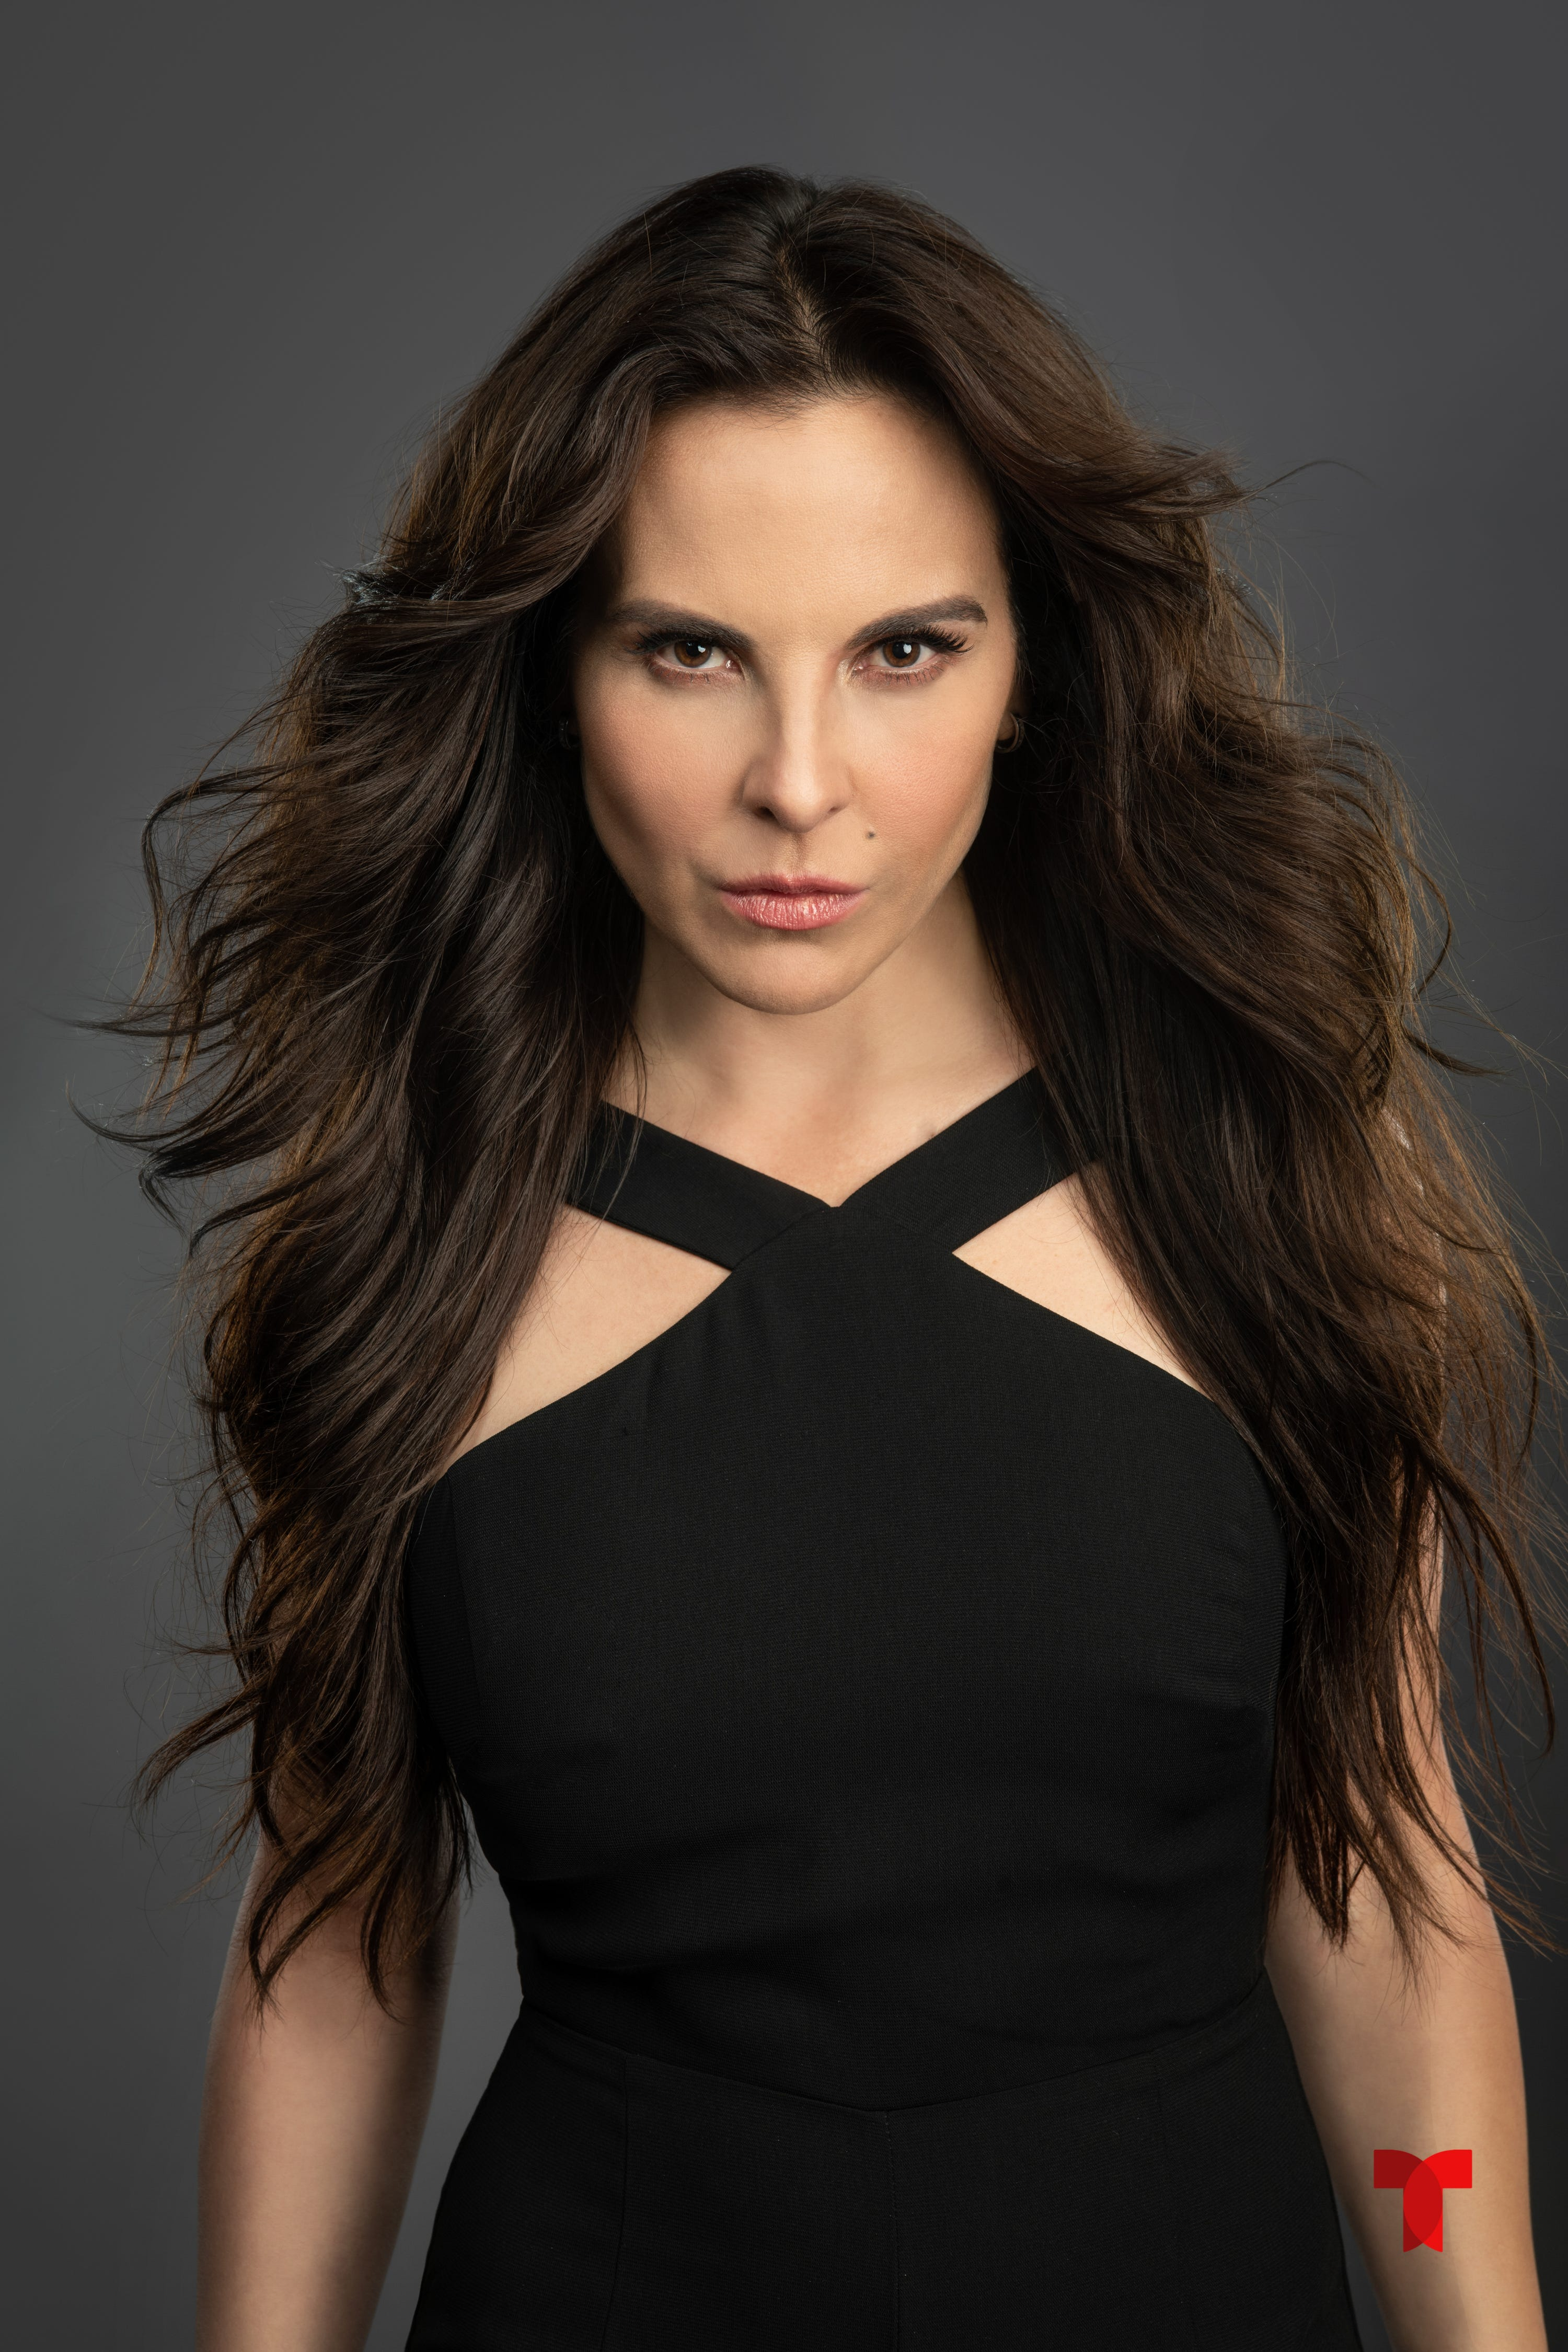 The 48-year old daughter of father (?) and mother(?) Kate Del Castillo in 2021 photo. Kate Del Castillo earned a  million dollar salary - leaving the net worth at  million in 2021